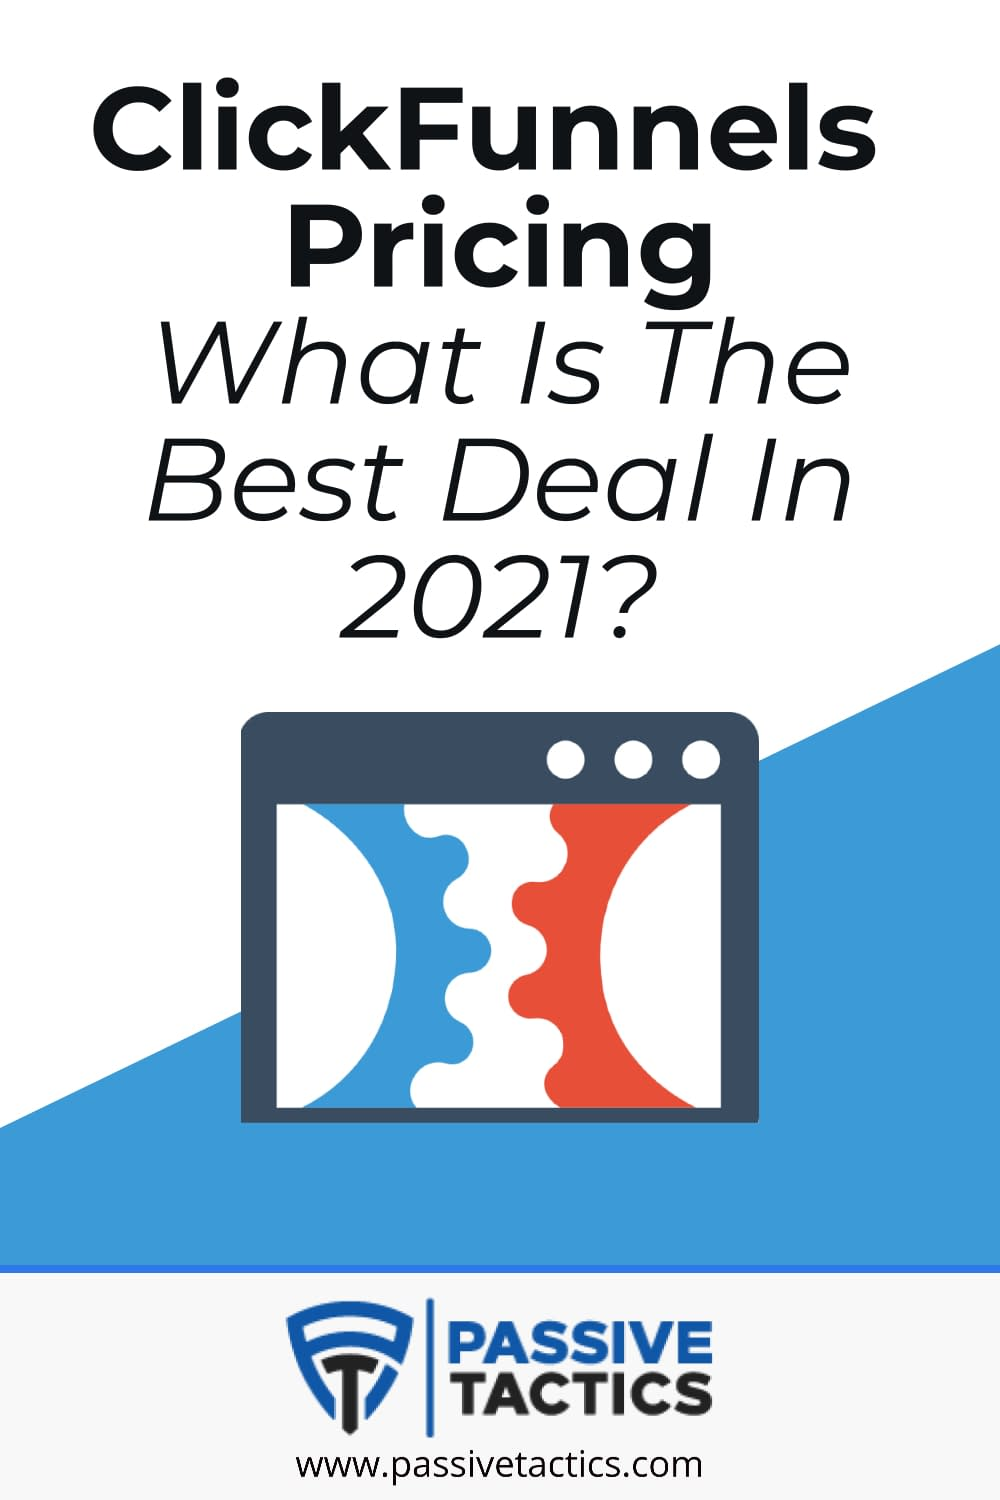 ClickFunnels Pricing: What Is The Best Deal In 2021?